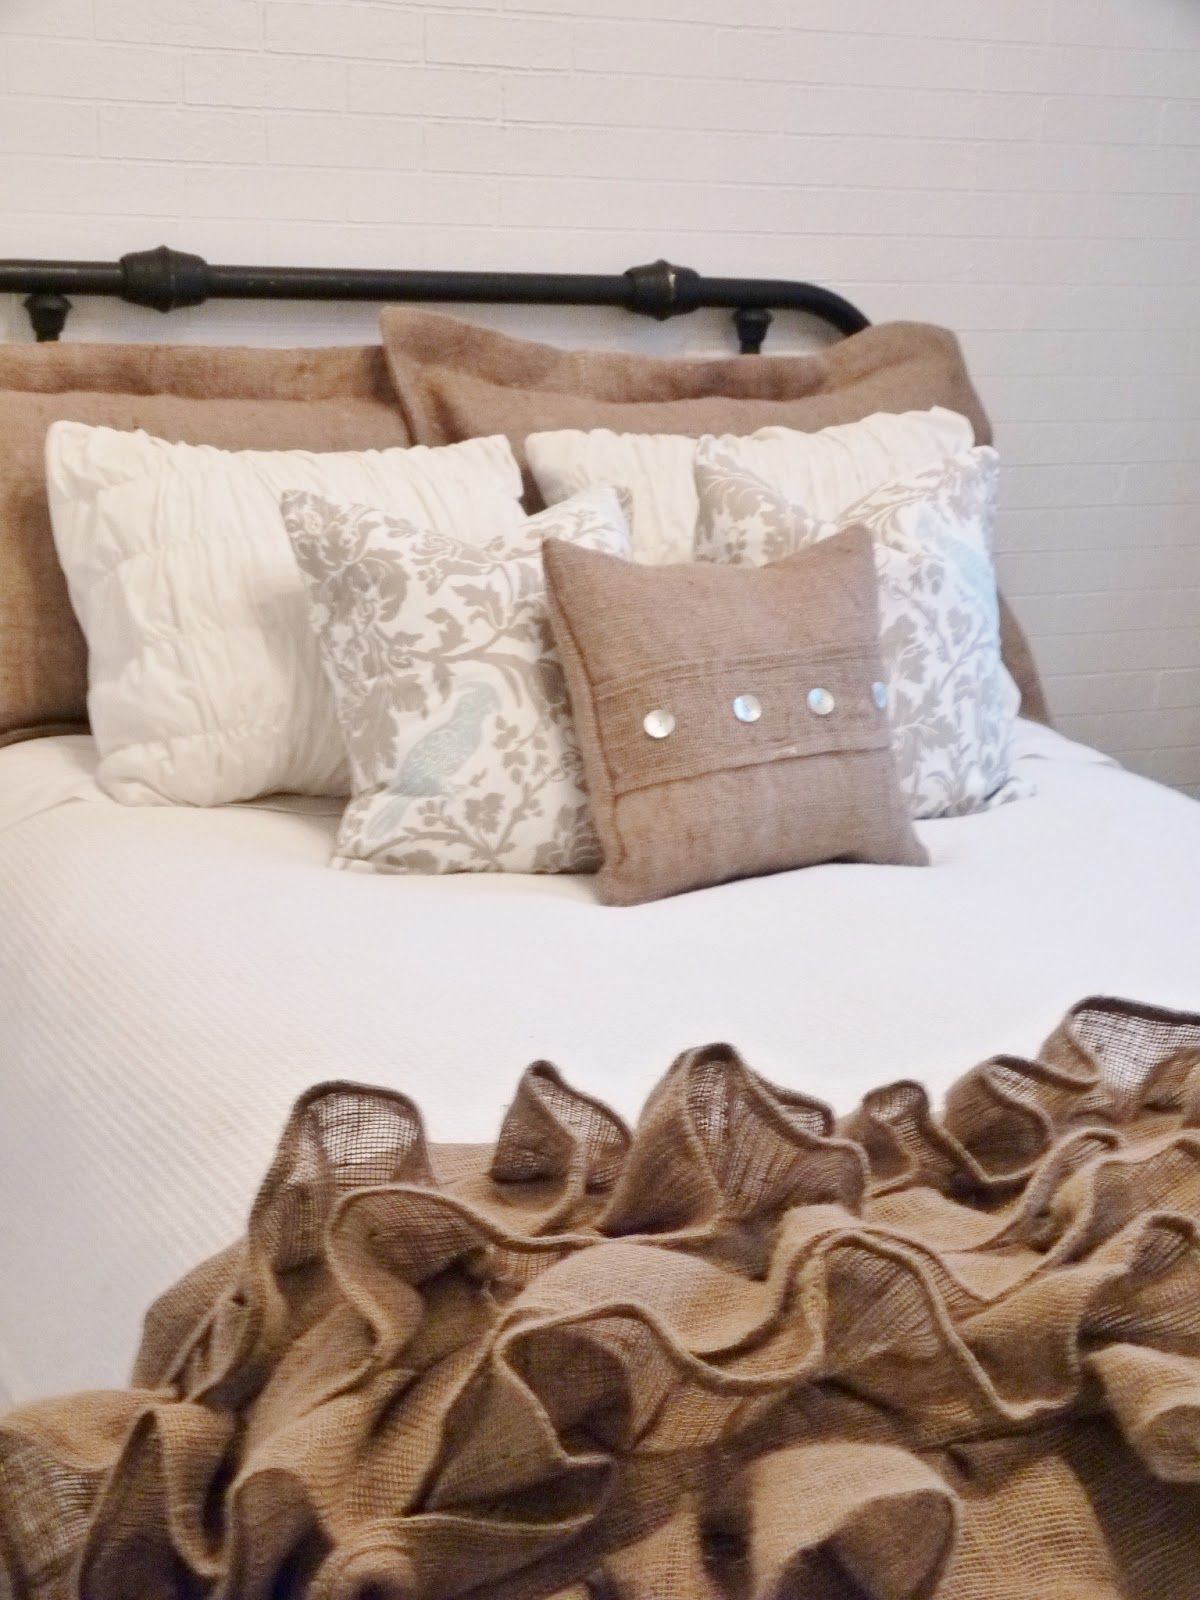 D I Y D E S I G N Sewing With Burlap Decorate Your Room Pillows Home Bedroom